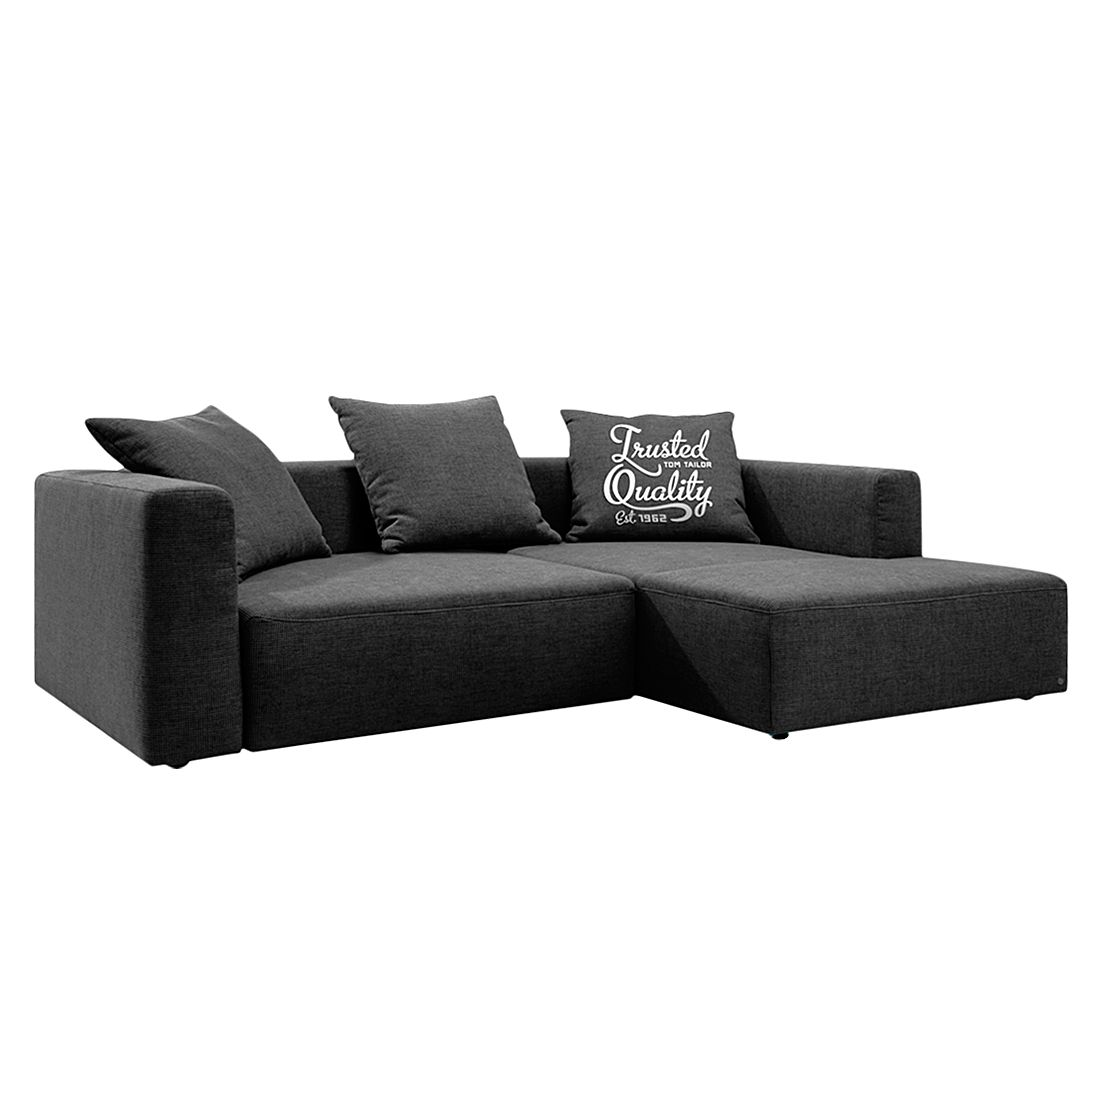 Ecksofa Heaven Casual Webstoff